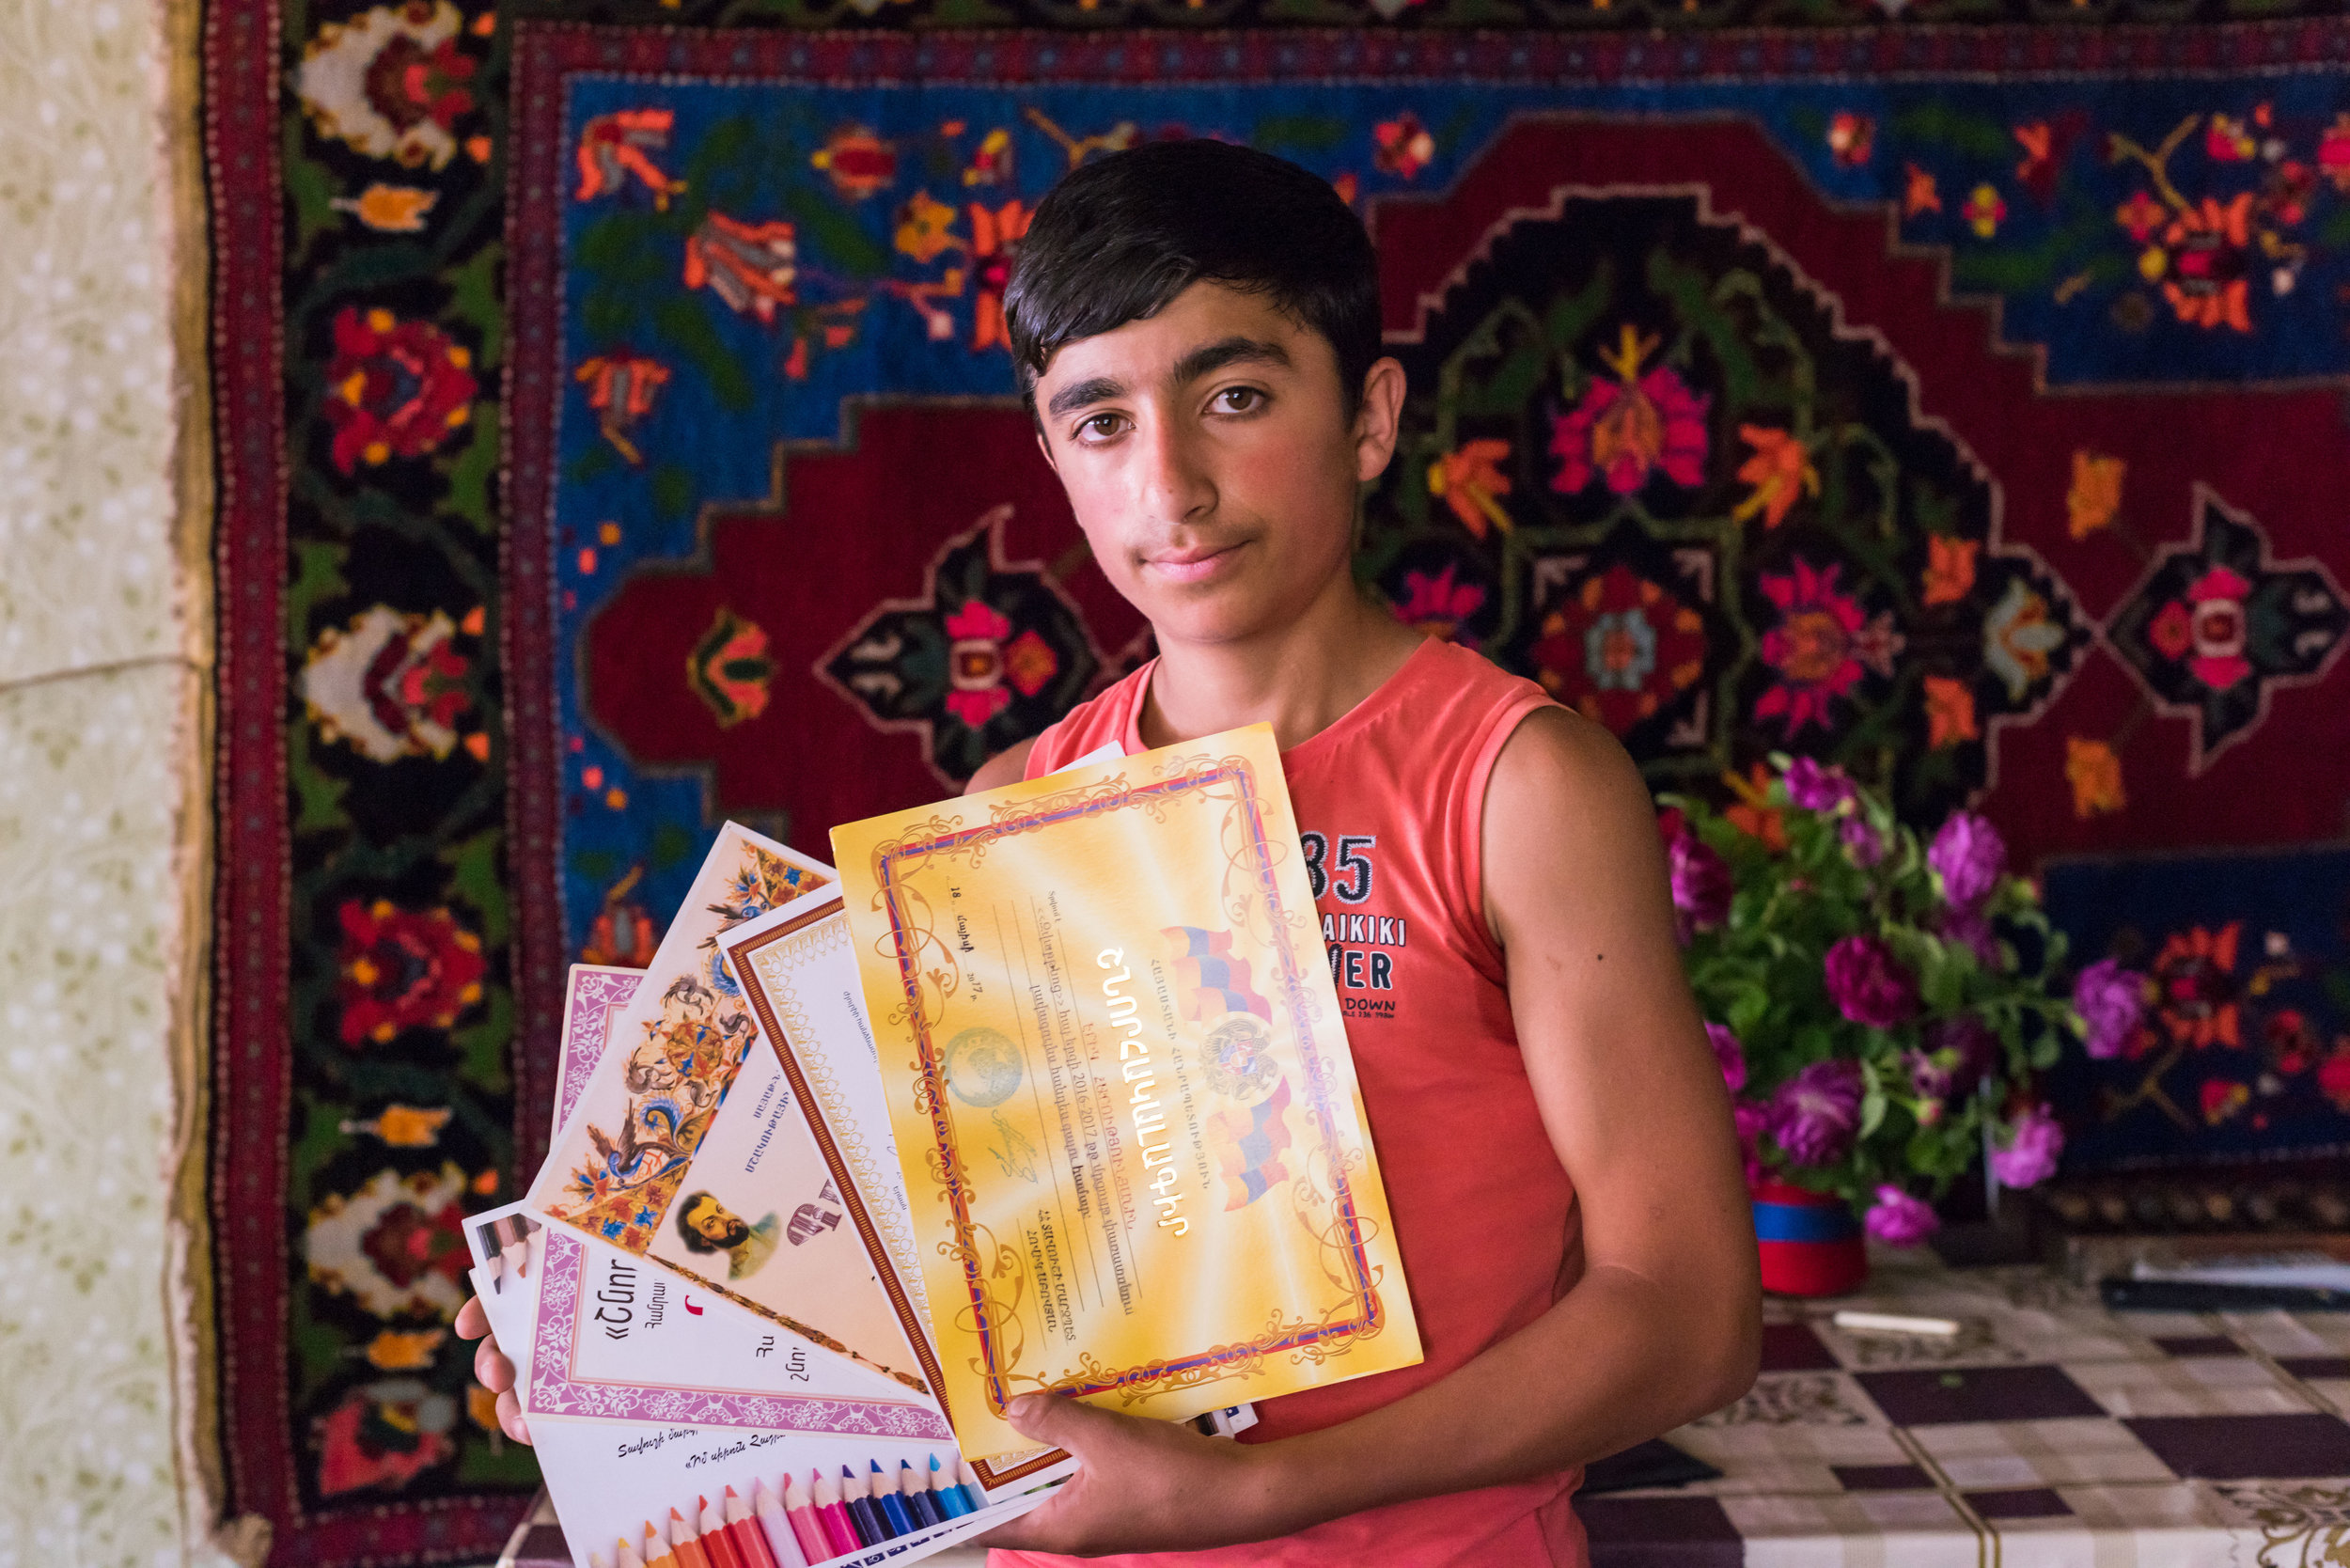 Erik, whose artistic talents receive support.   FAR is changing lives in Tavush. Come and see your money at work.